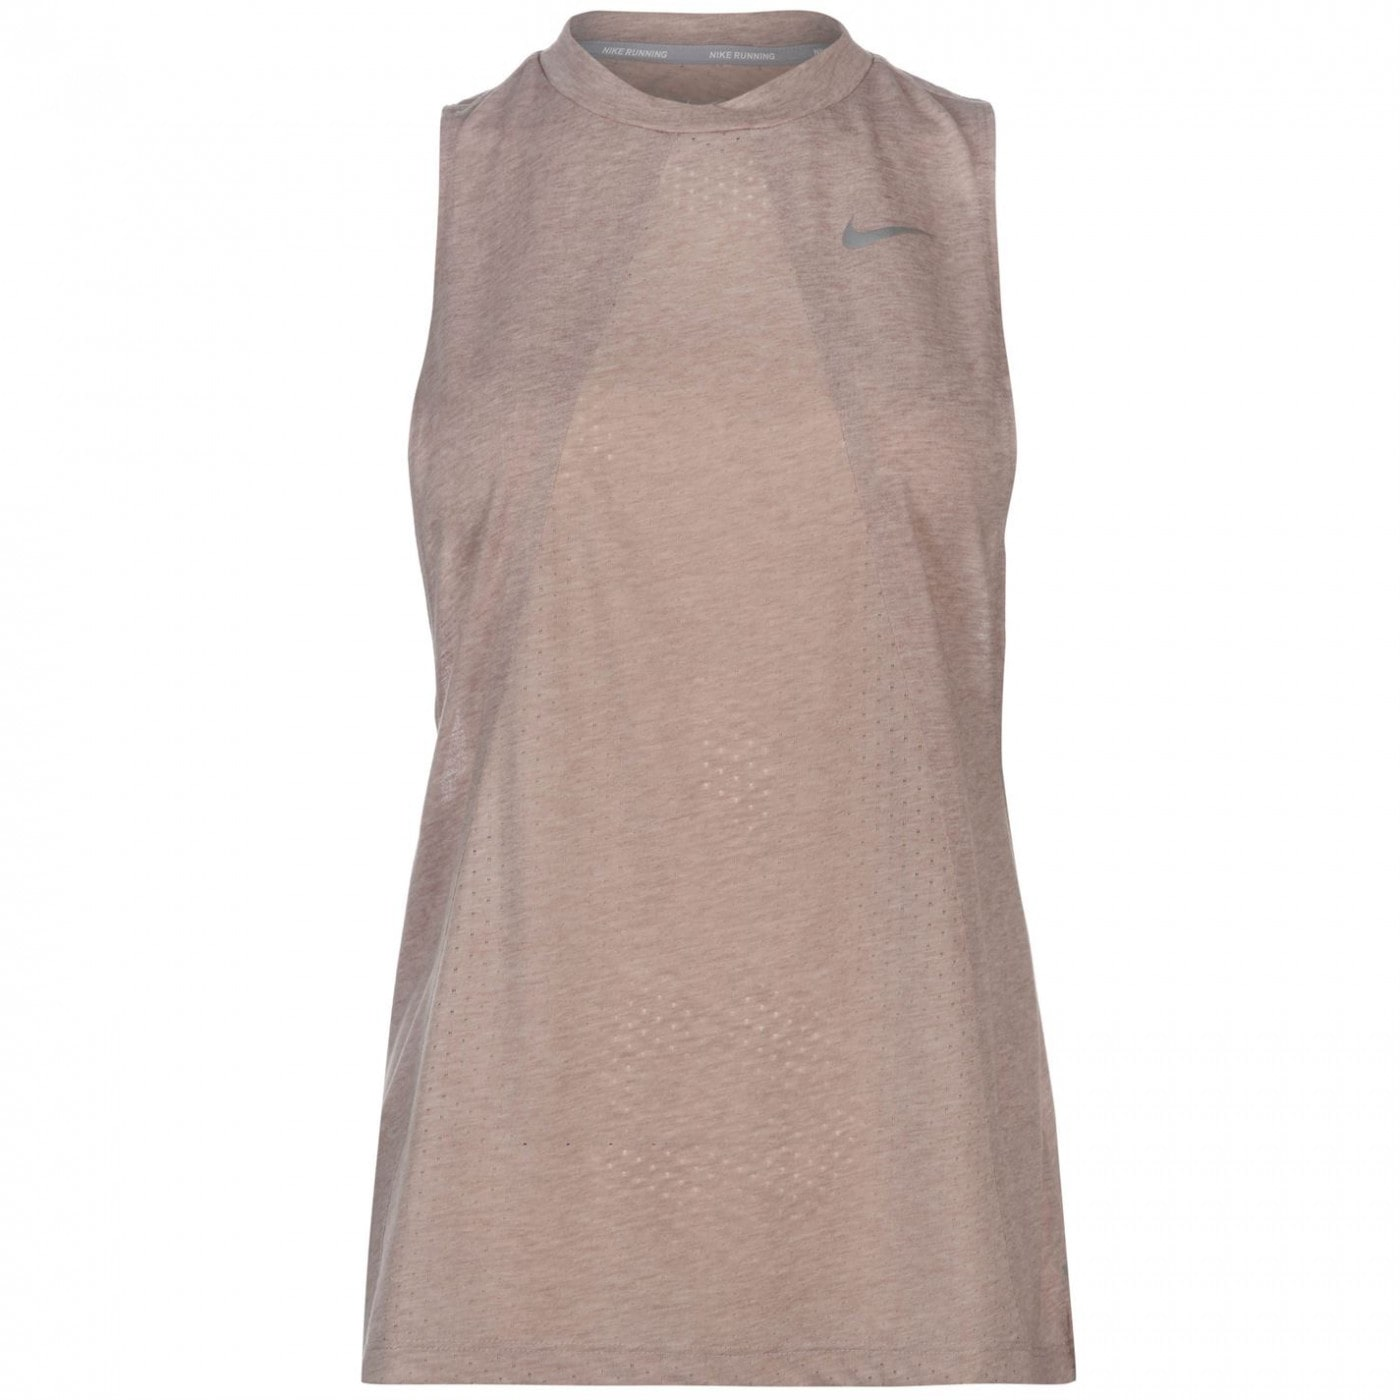 Nike Tailwind Tank Top Ladies